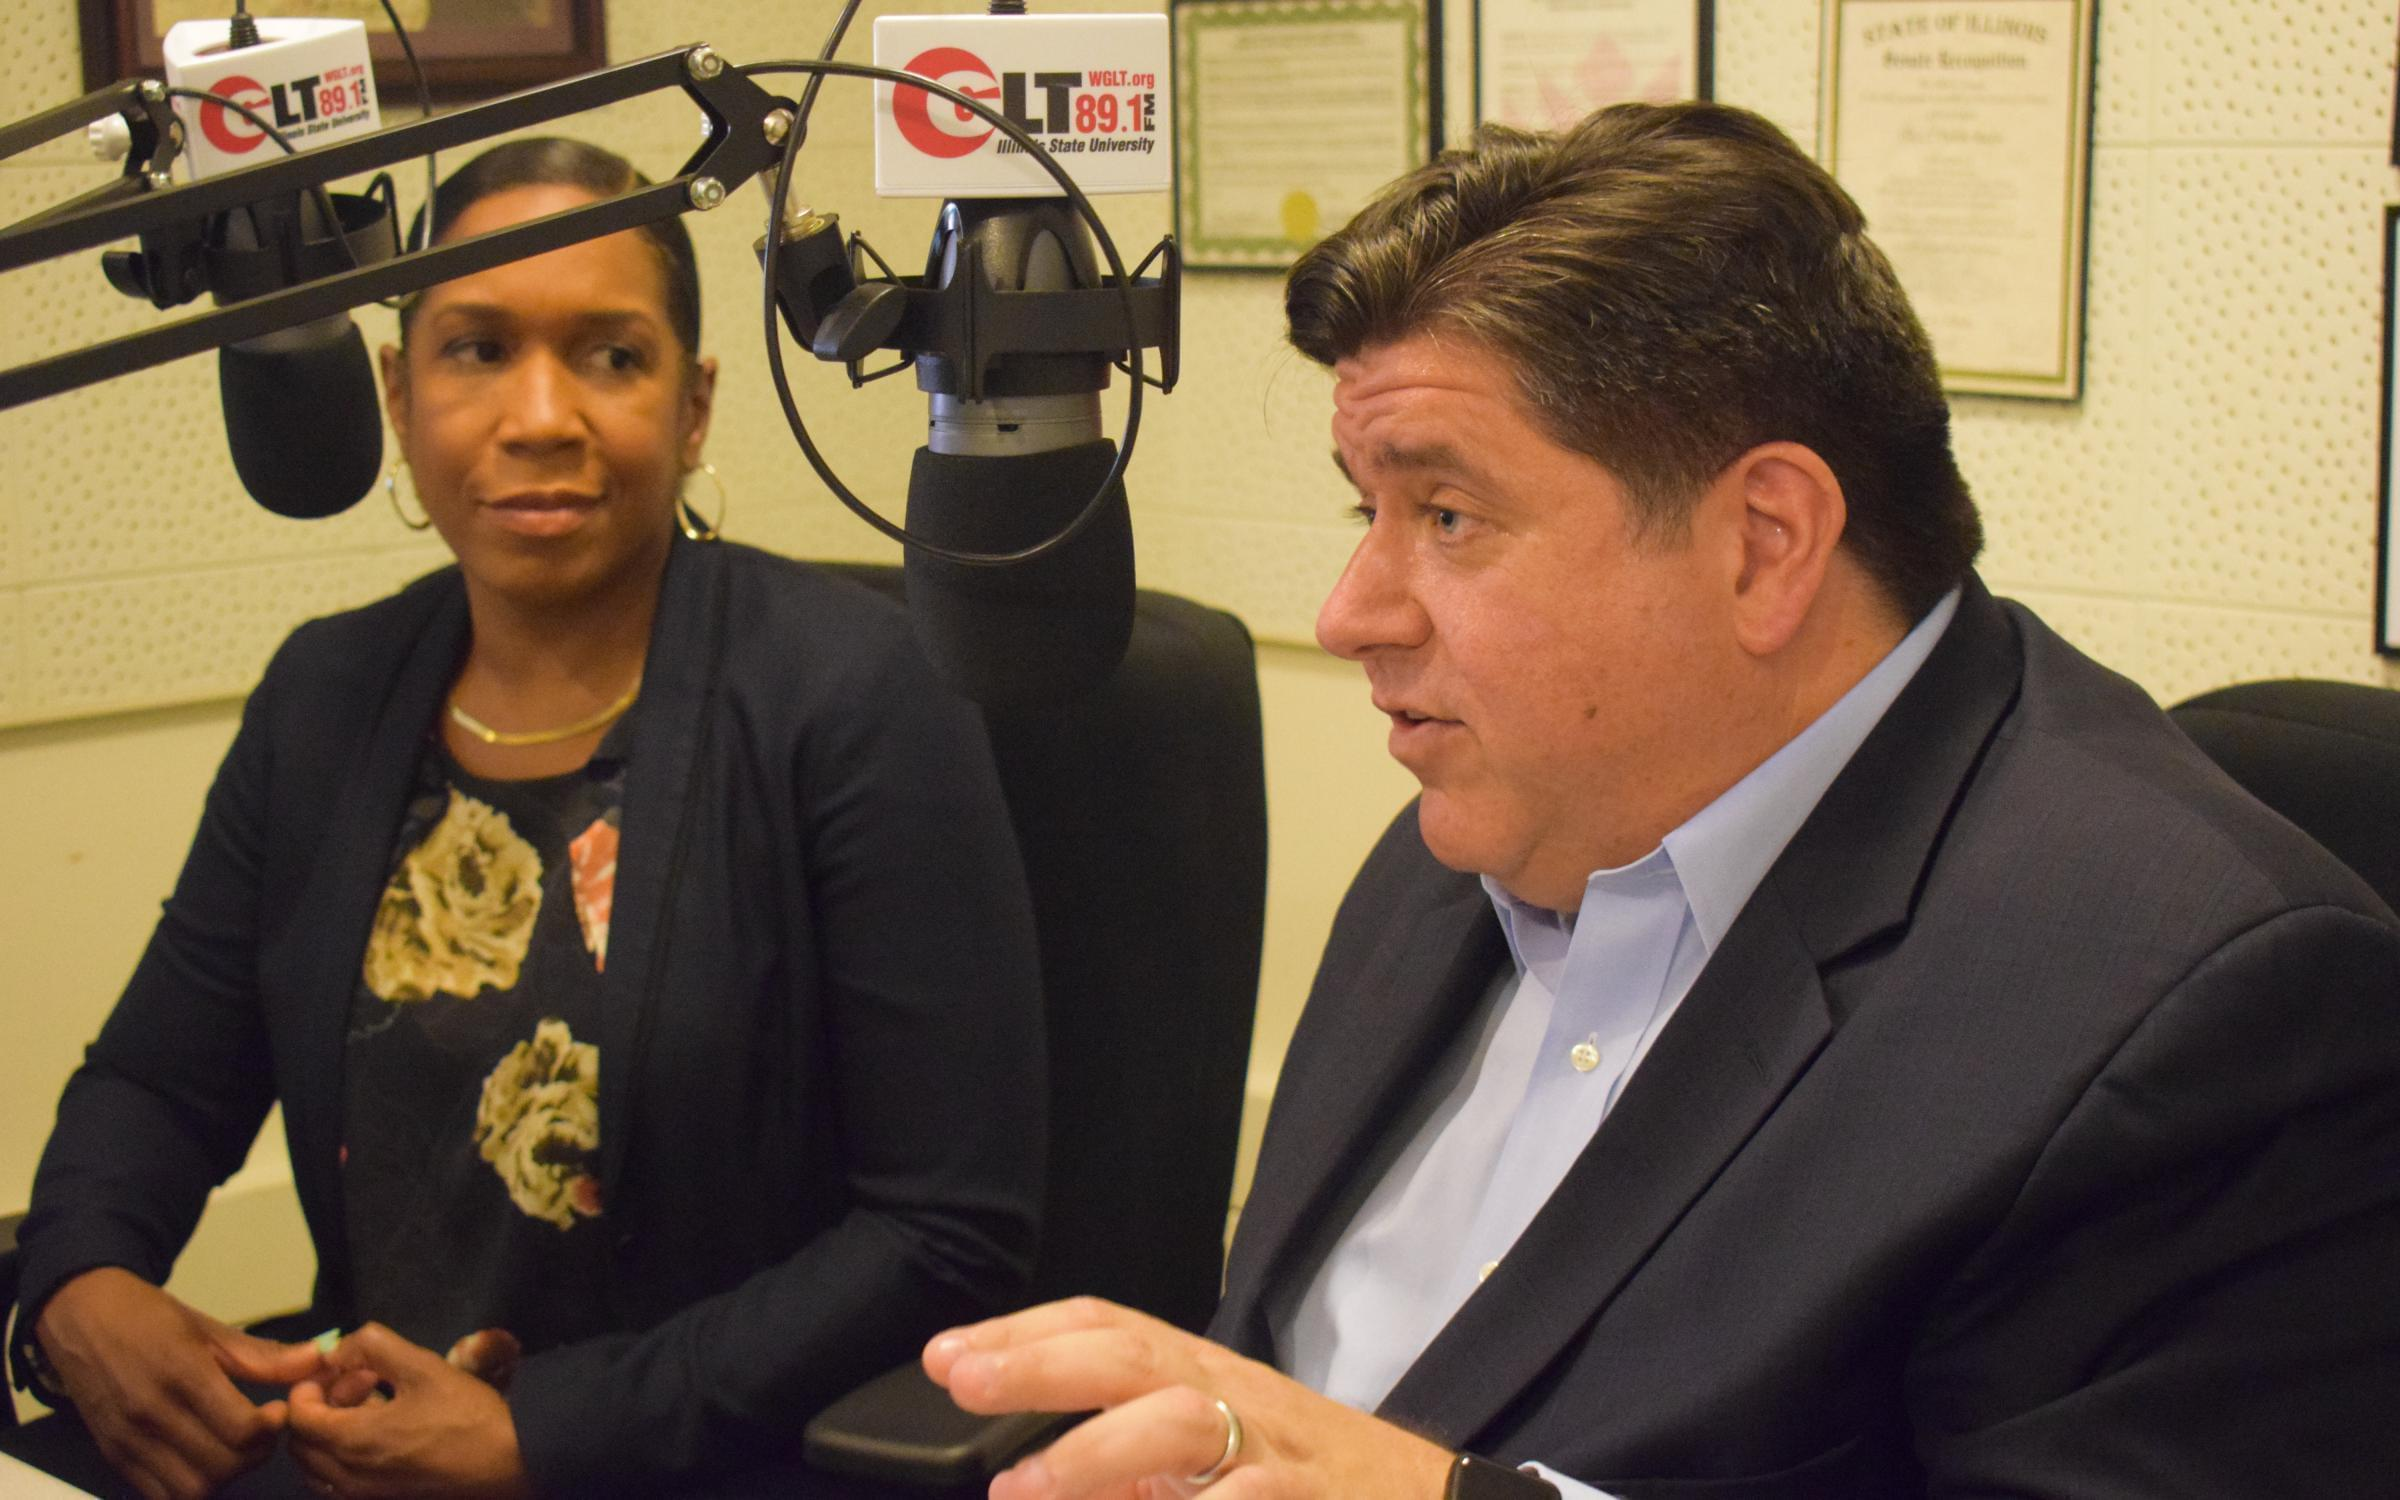 Democratic candidate for governor JB Pritzker in the WGLT studio with his running mate, Juliana Stratton, on Wednesday, Sept. 26, 2018.